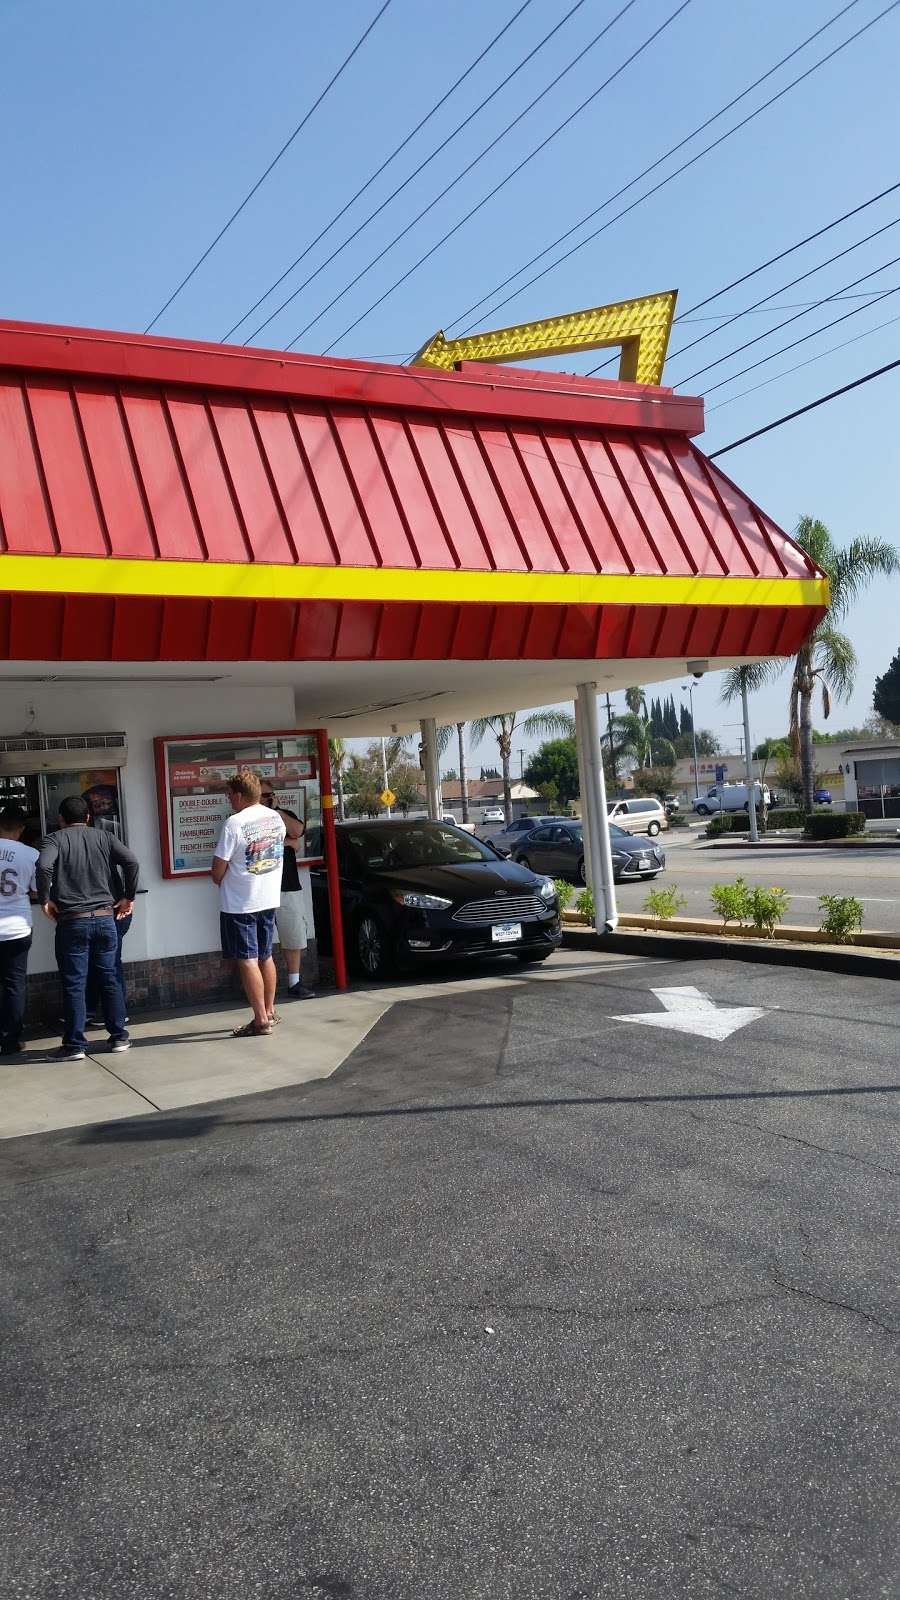 In-N-Out Burger - restaurant    Photo 2 of 10   Address: 10601 Lower Azusa Rd, Temple City, CA 91780, USA   Phone: (800) 786-1000